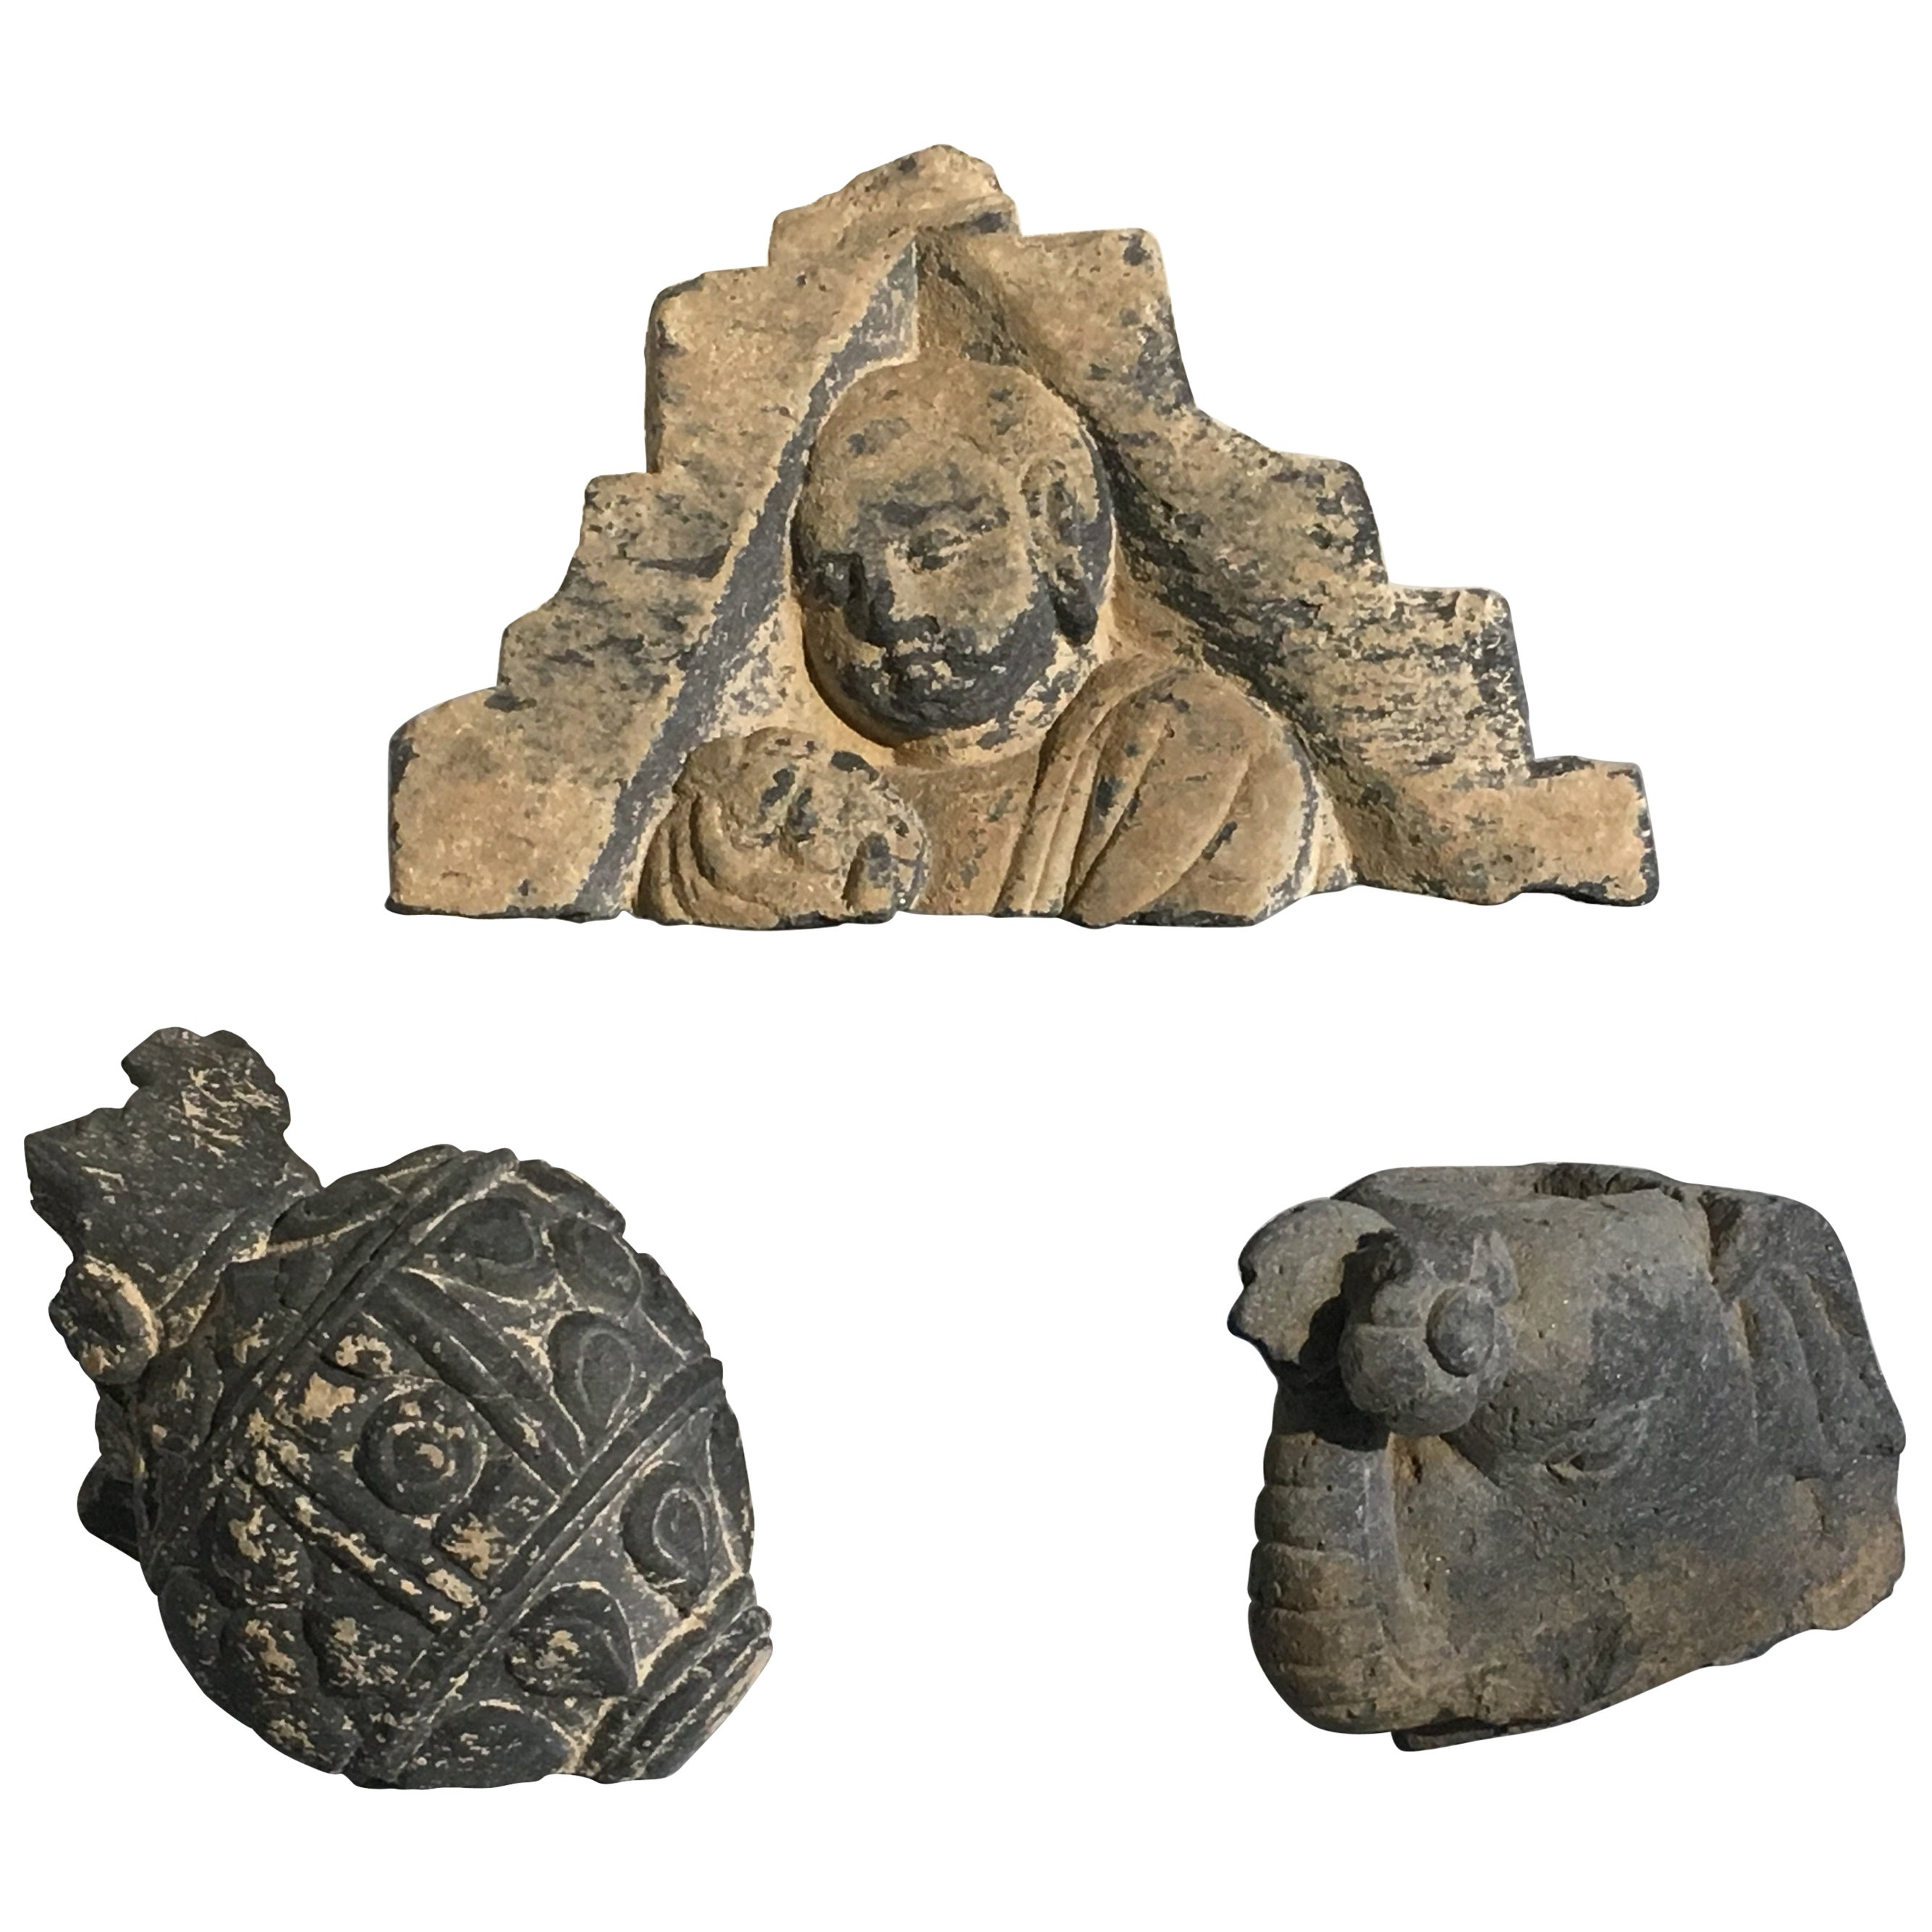 Group of Gandharan Carved Schist Sculptural Fragments, 3rd-5th Century